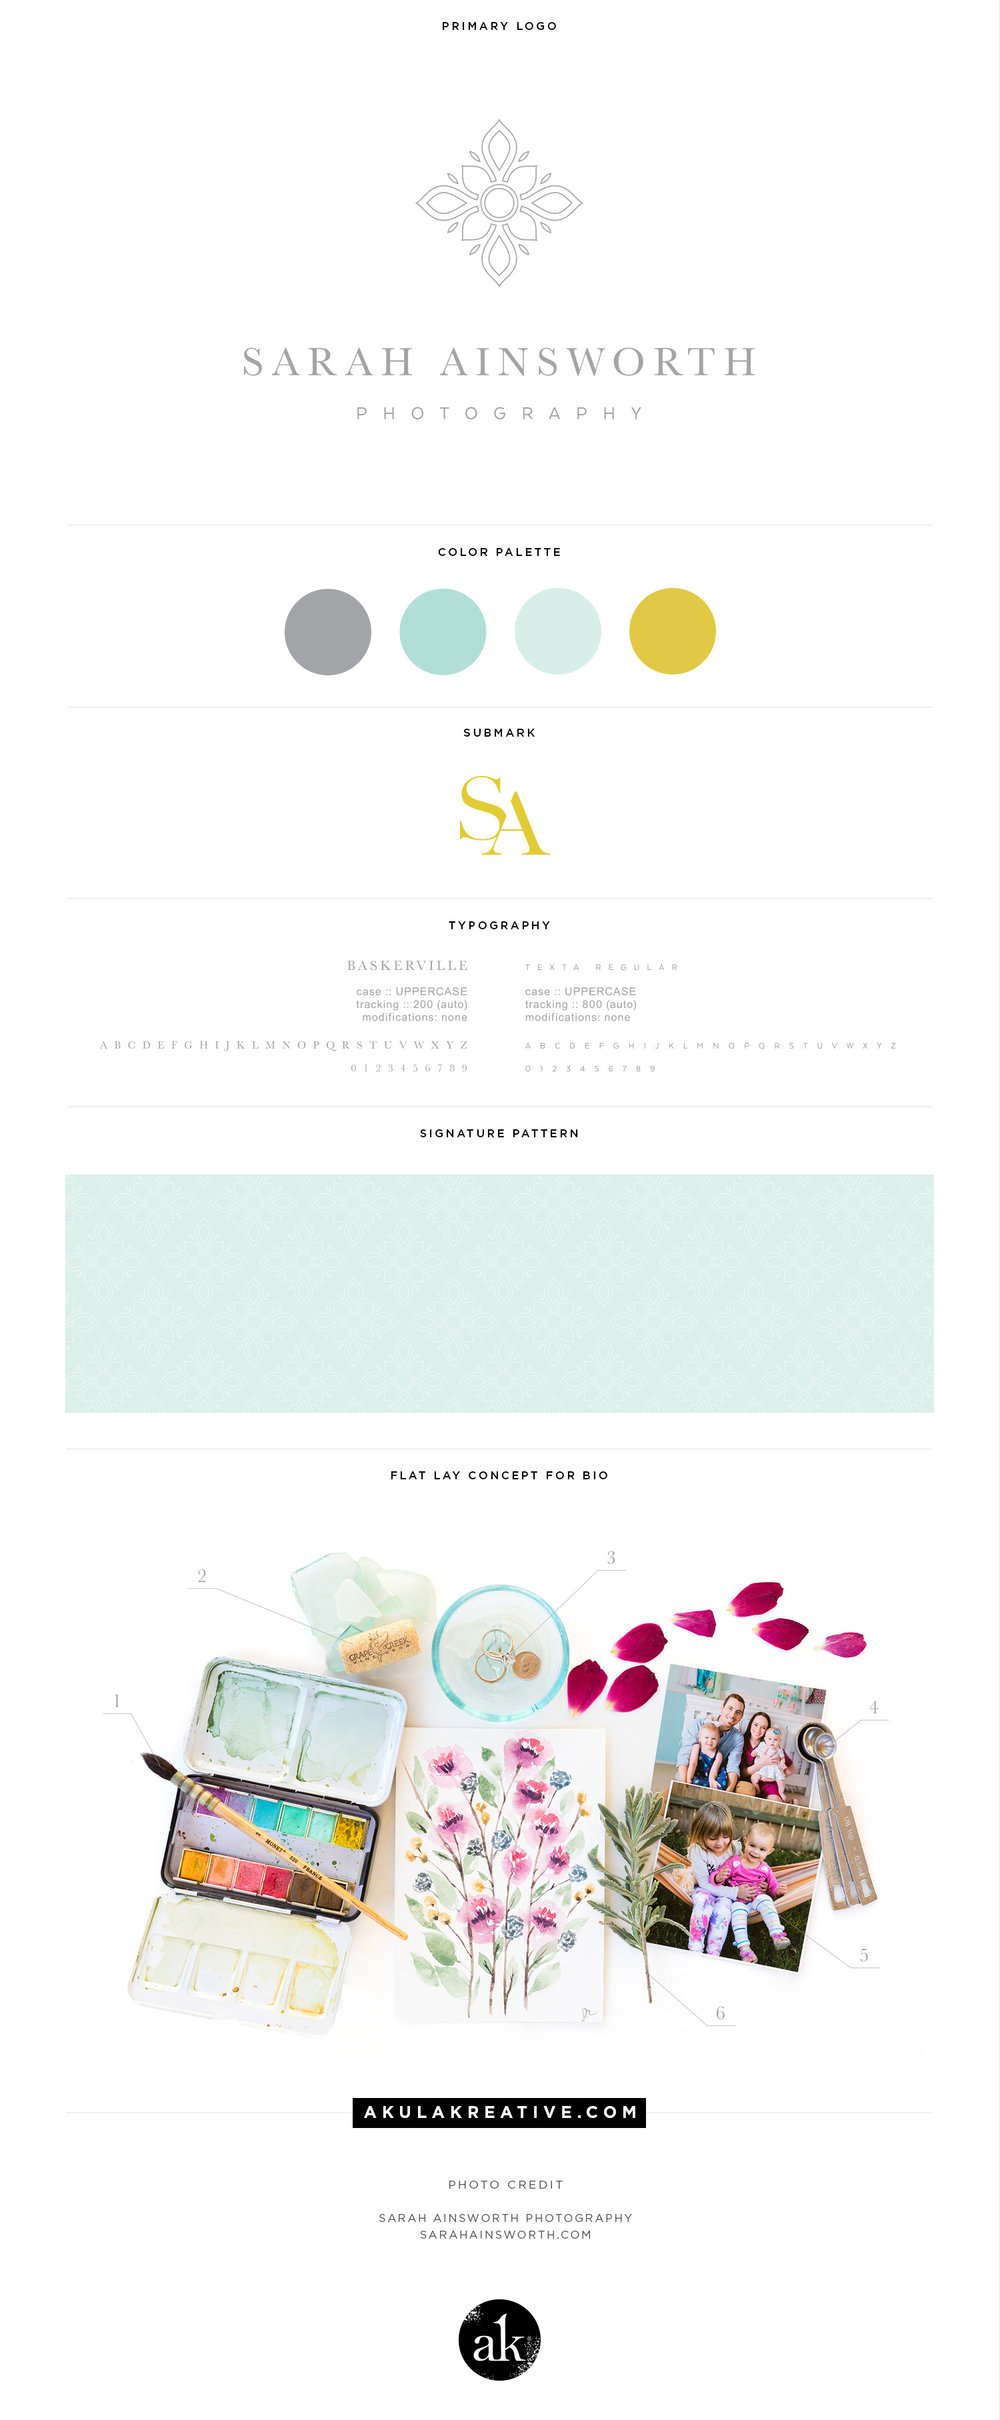 Clean, professional, timeless branding in gray, aqua, and chartreuse / mustard yellow for Sarah Ainsworth Photography in Houston, TX | Design by Akula Kreative | akulakreative.com